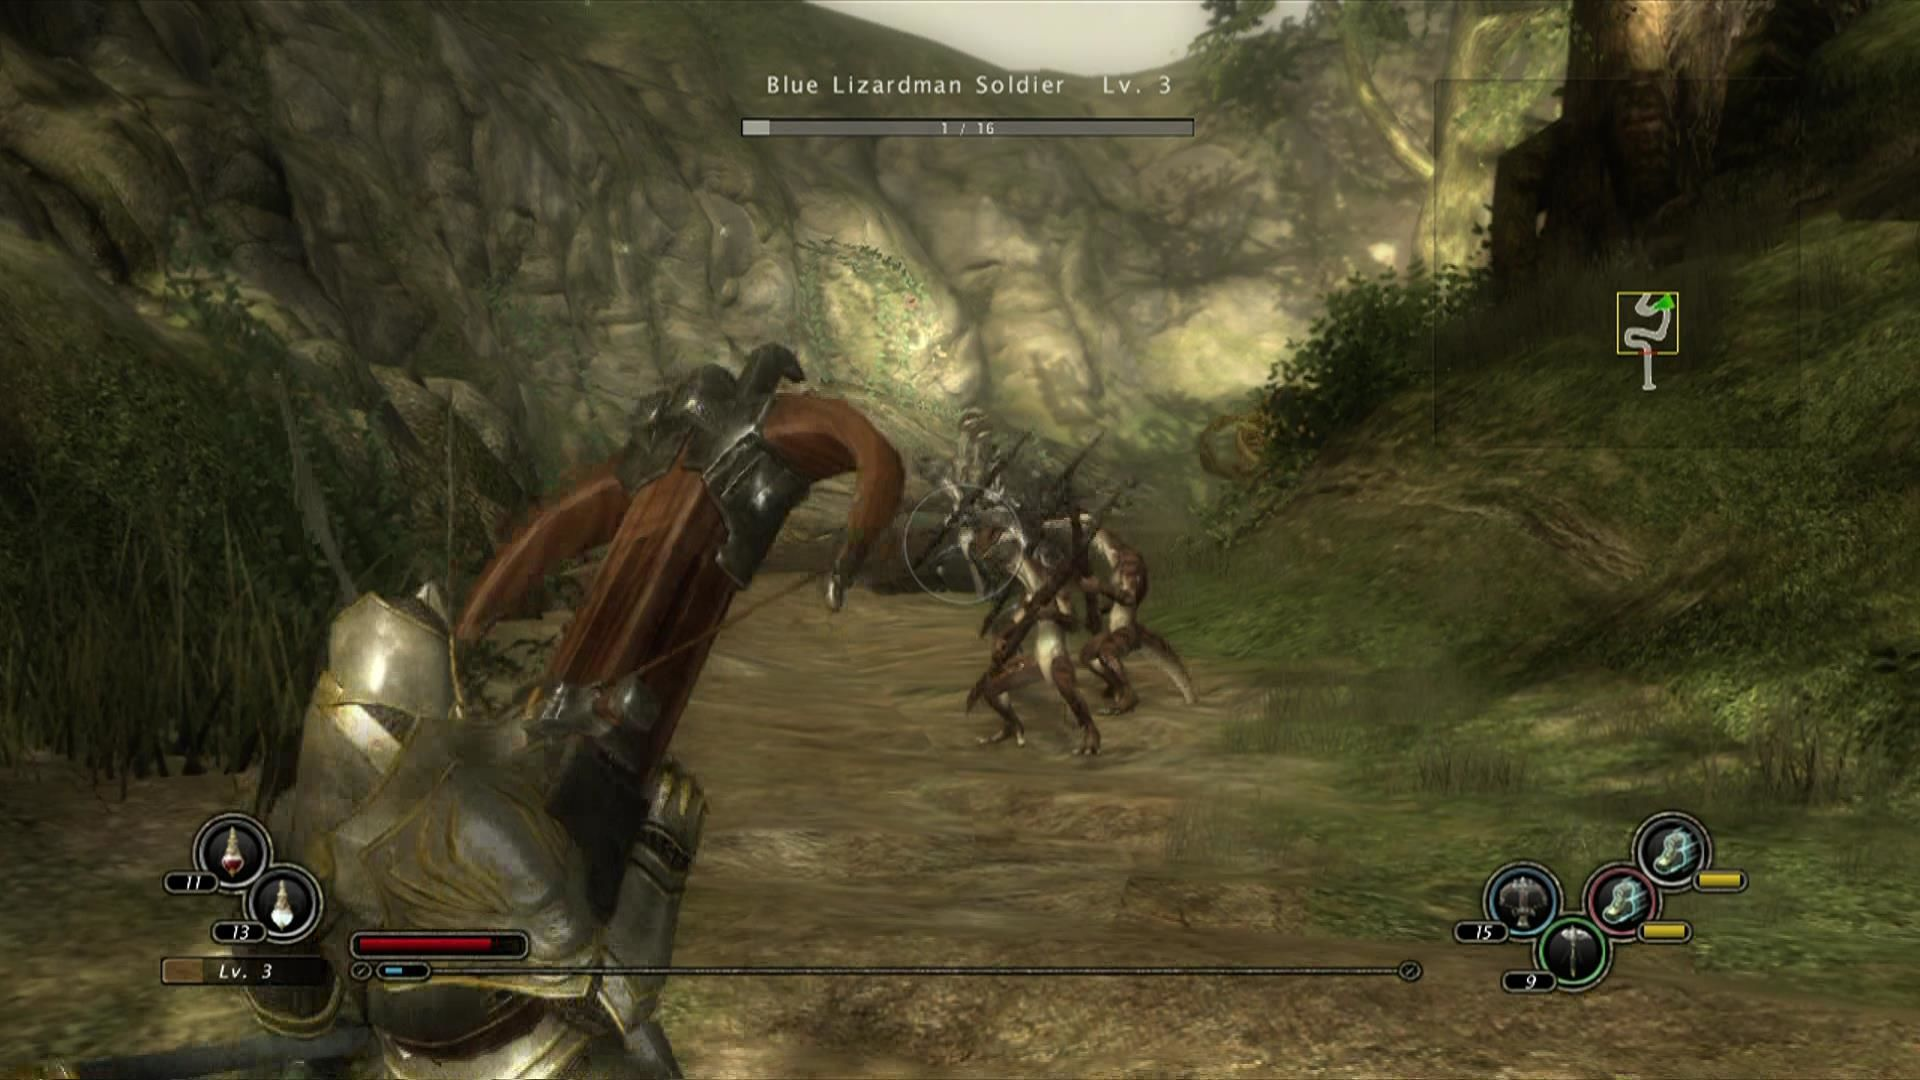 Kingdom Under Fire: Circle of Doom Xbox 360 Use ranged weapons to take down enemies.